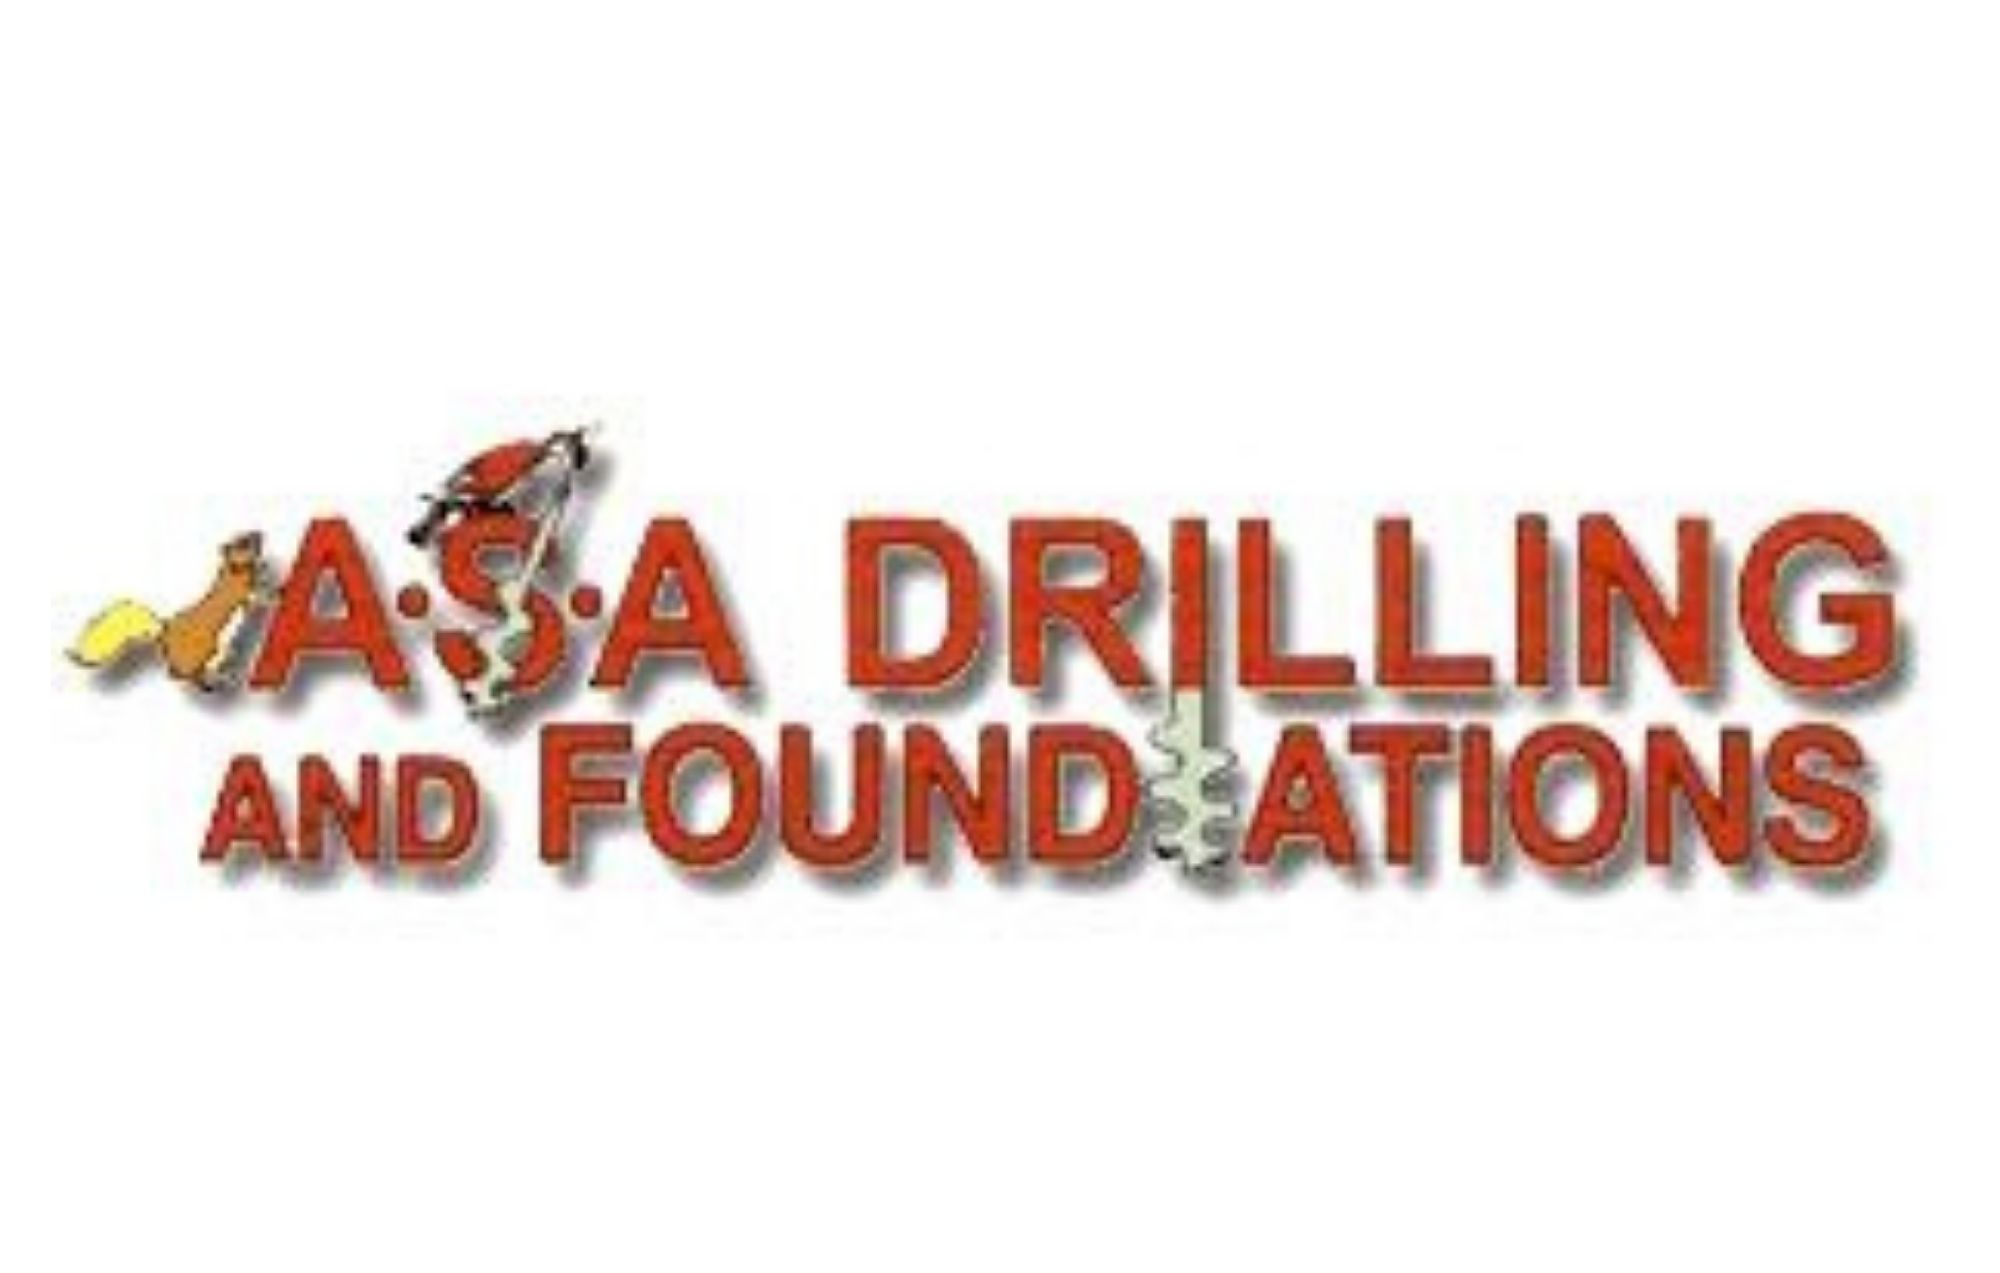 ASA Drilling and Foundations